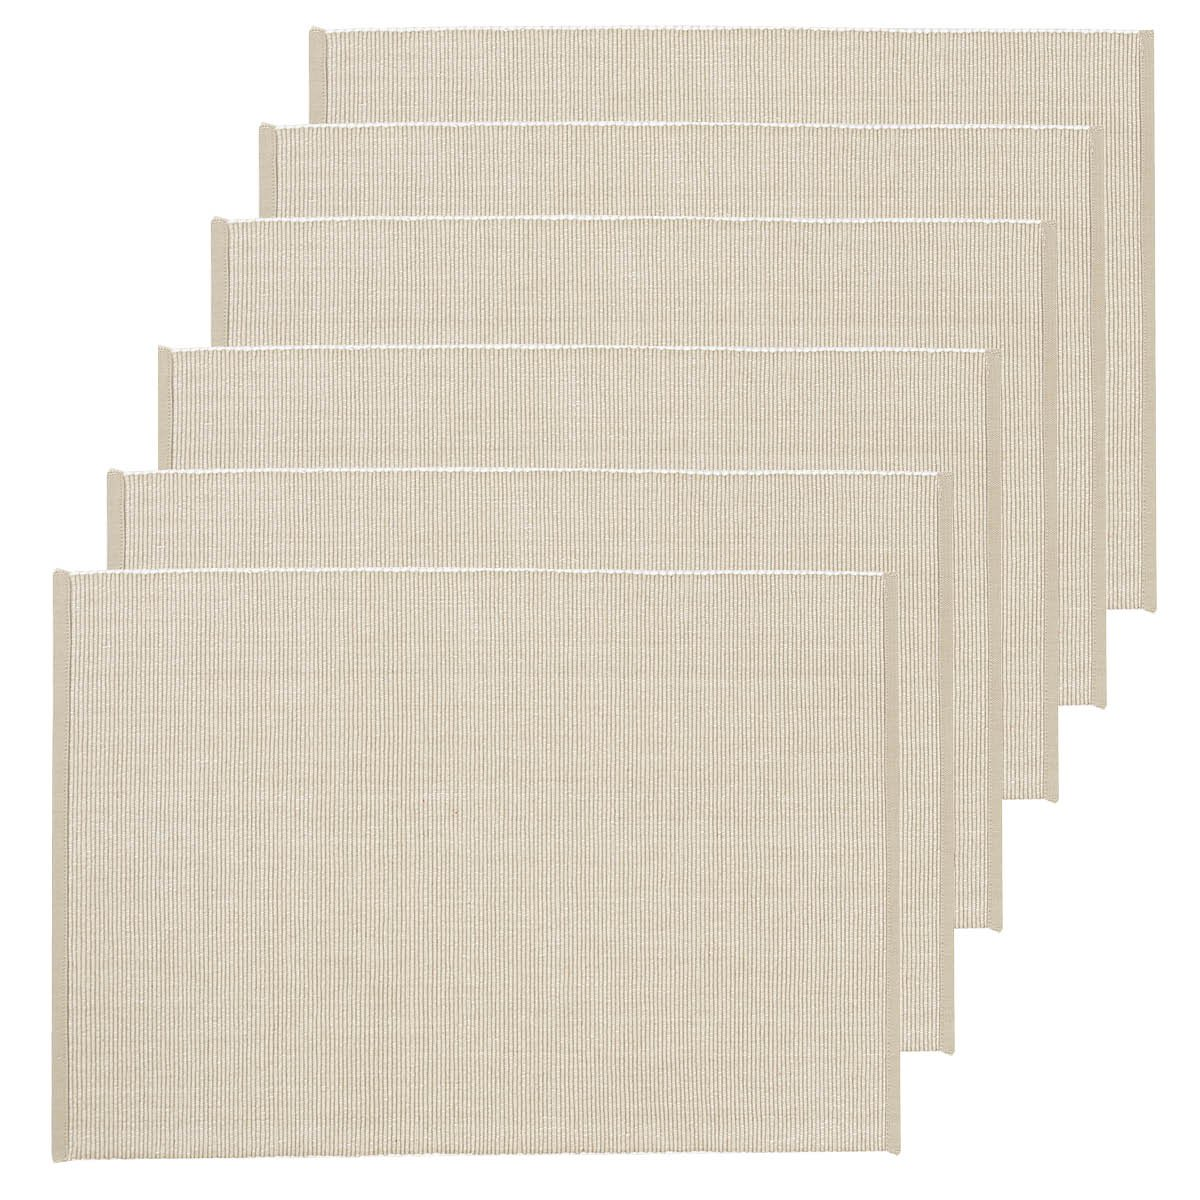 C&F Home Ribbed Chambray Sandstone Cotton Placemat Set of 6 Rectangular Placemat Set of 6 Sandstone Natural